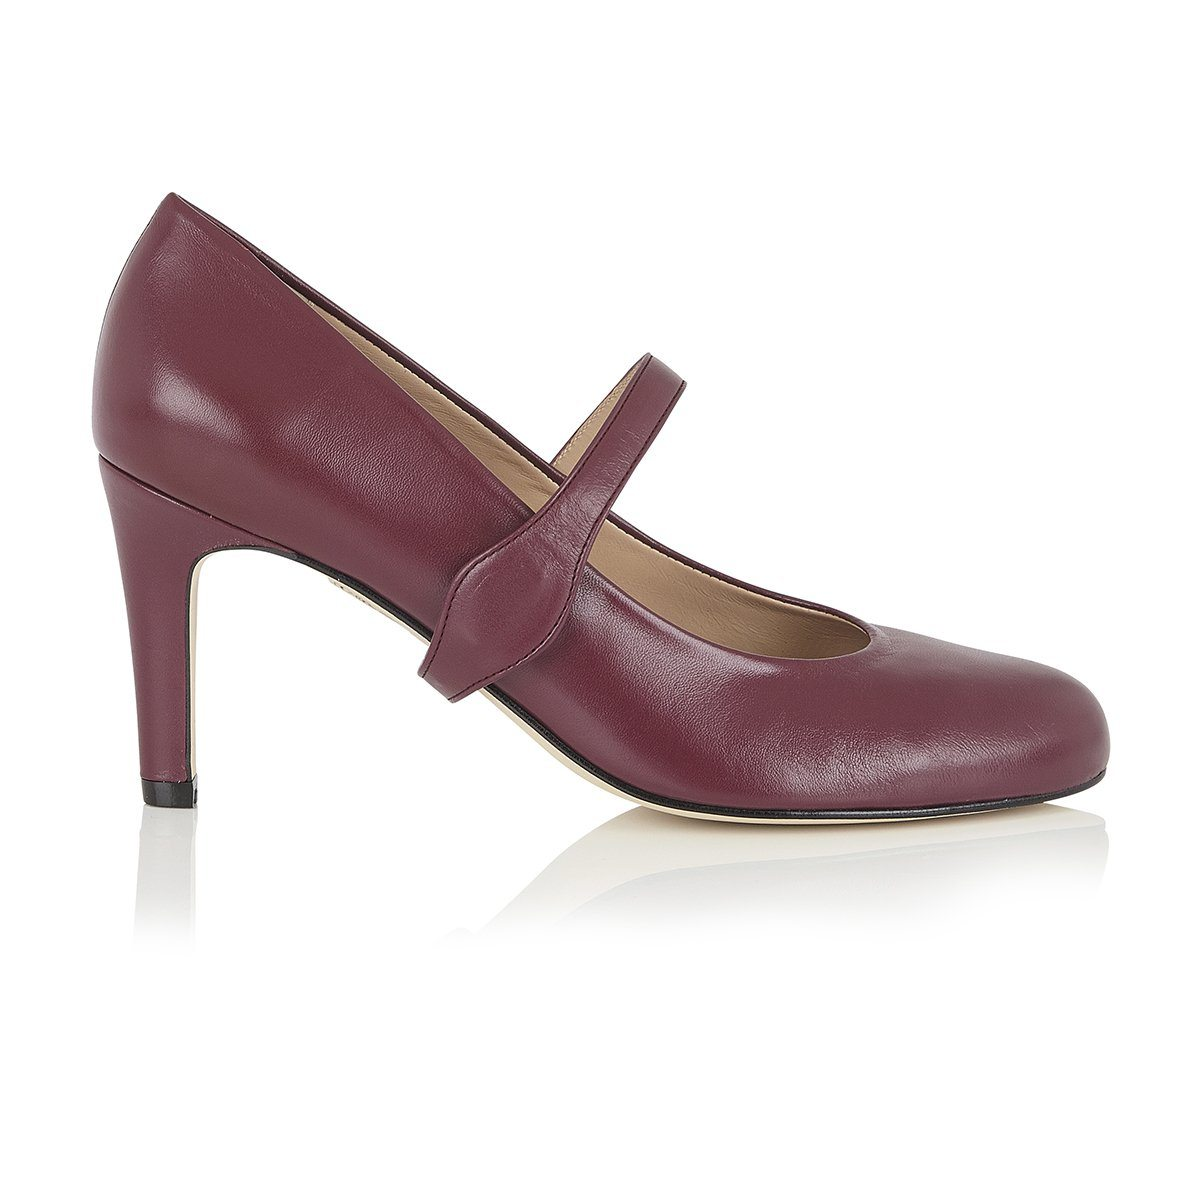 Take My Lead - 18 Hour Heels - Plum Nappa Leather - Shoes by Shaherazad